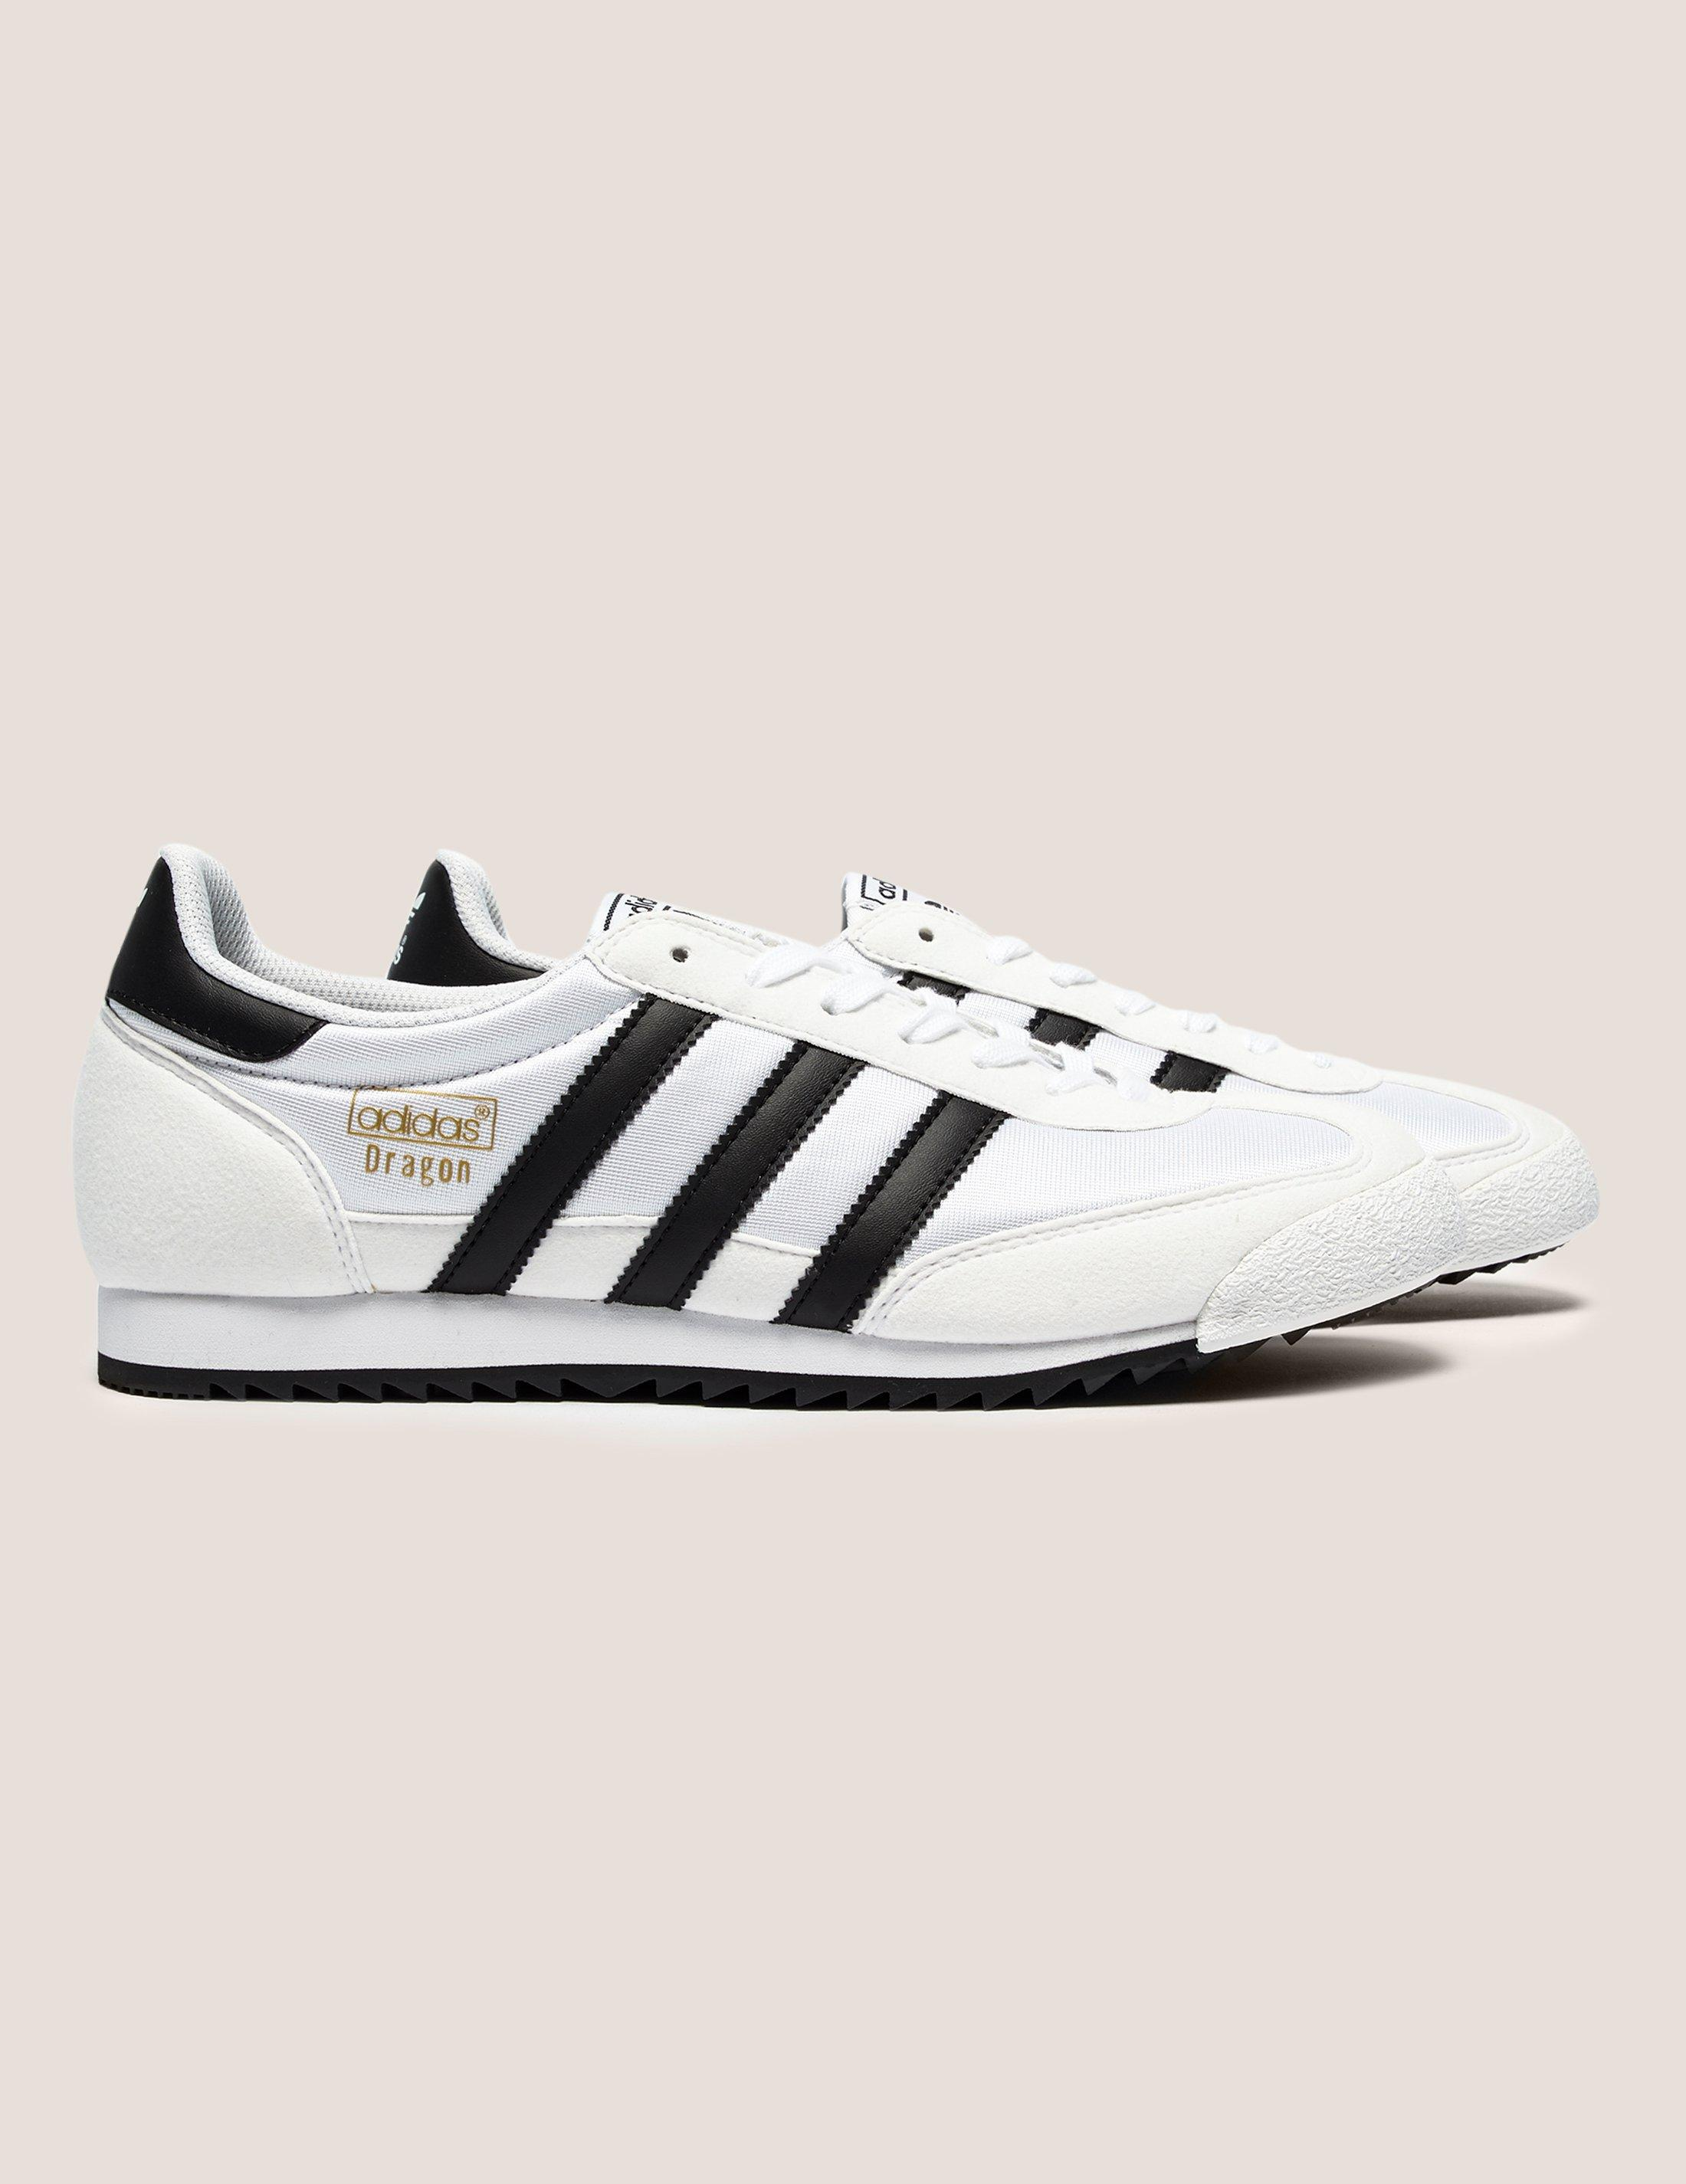 b6049759fba4 adidas Originals Mens Dragon Vintage White in White for Men - Lyst